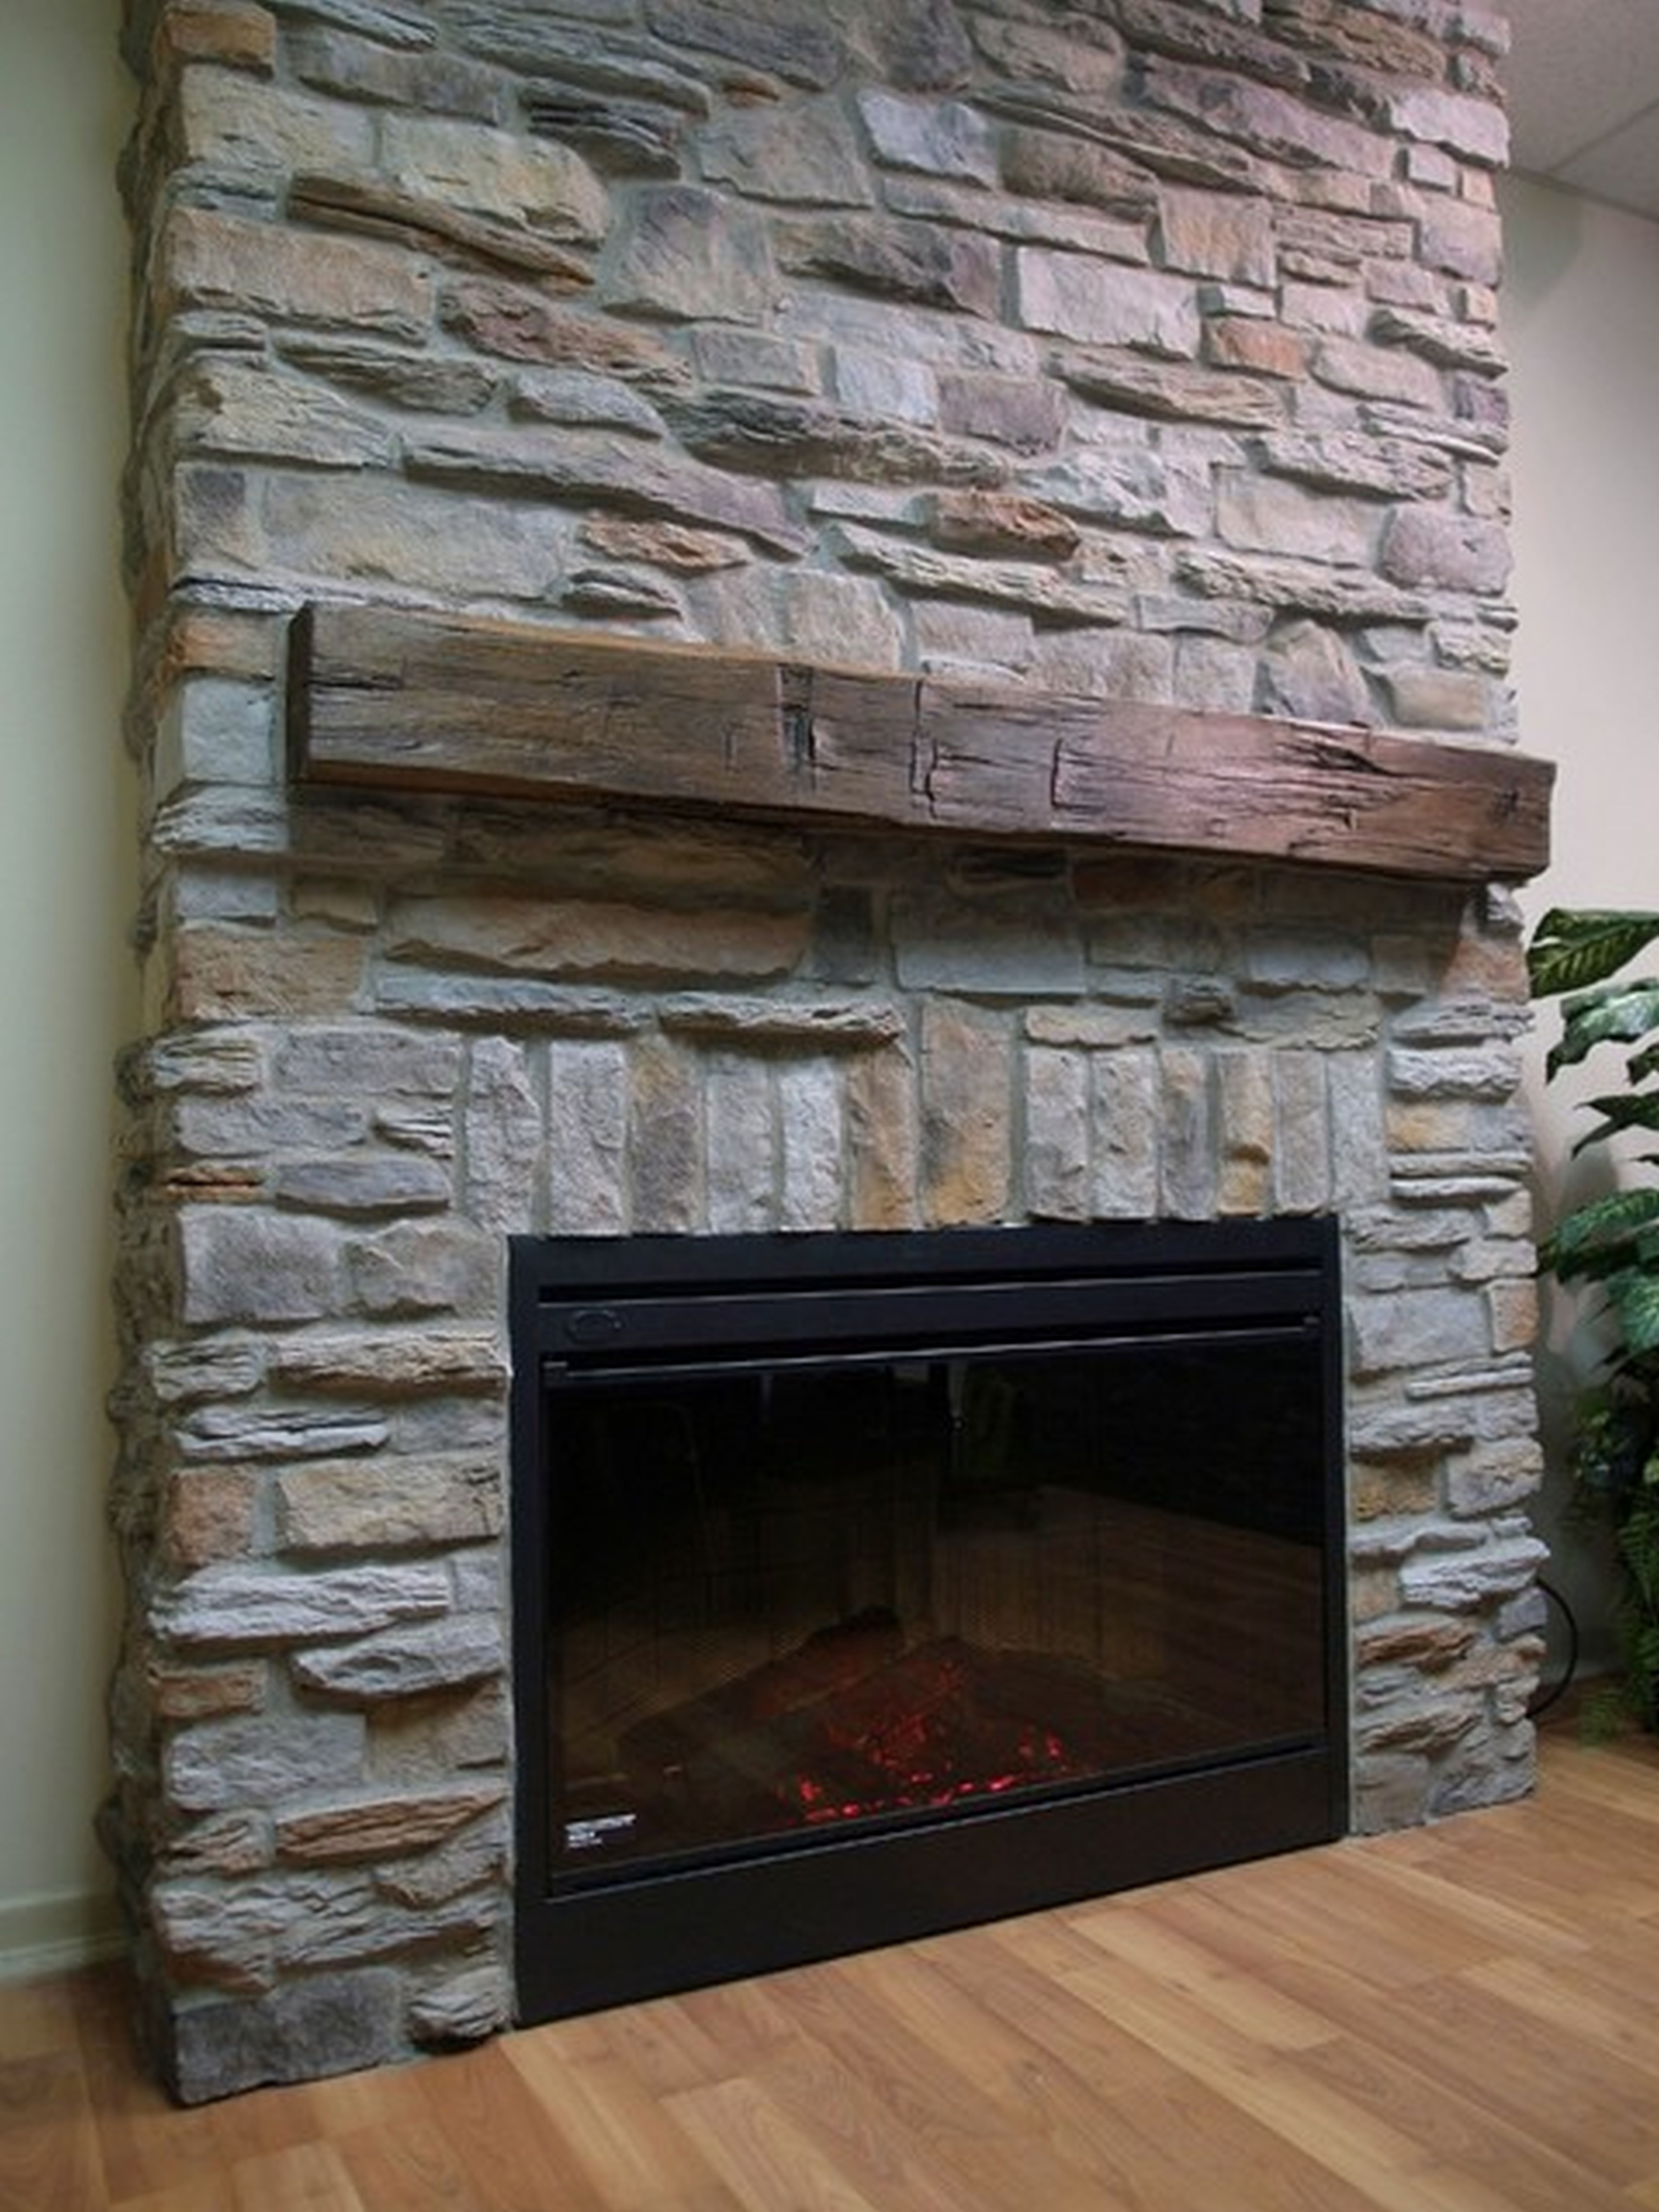 How to make a corner built in for fireplace insert Corner rock fireplace designs